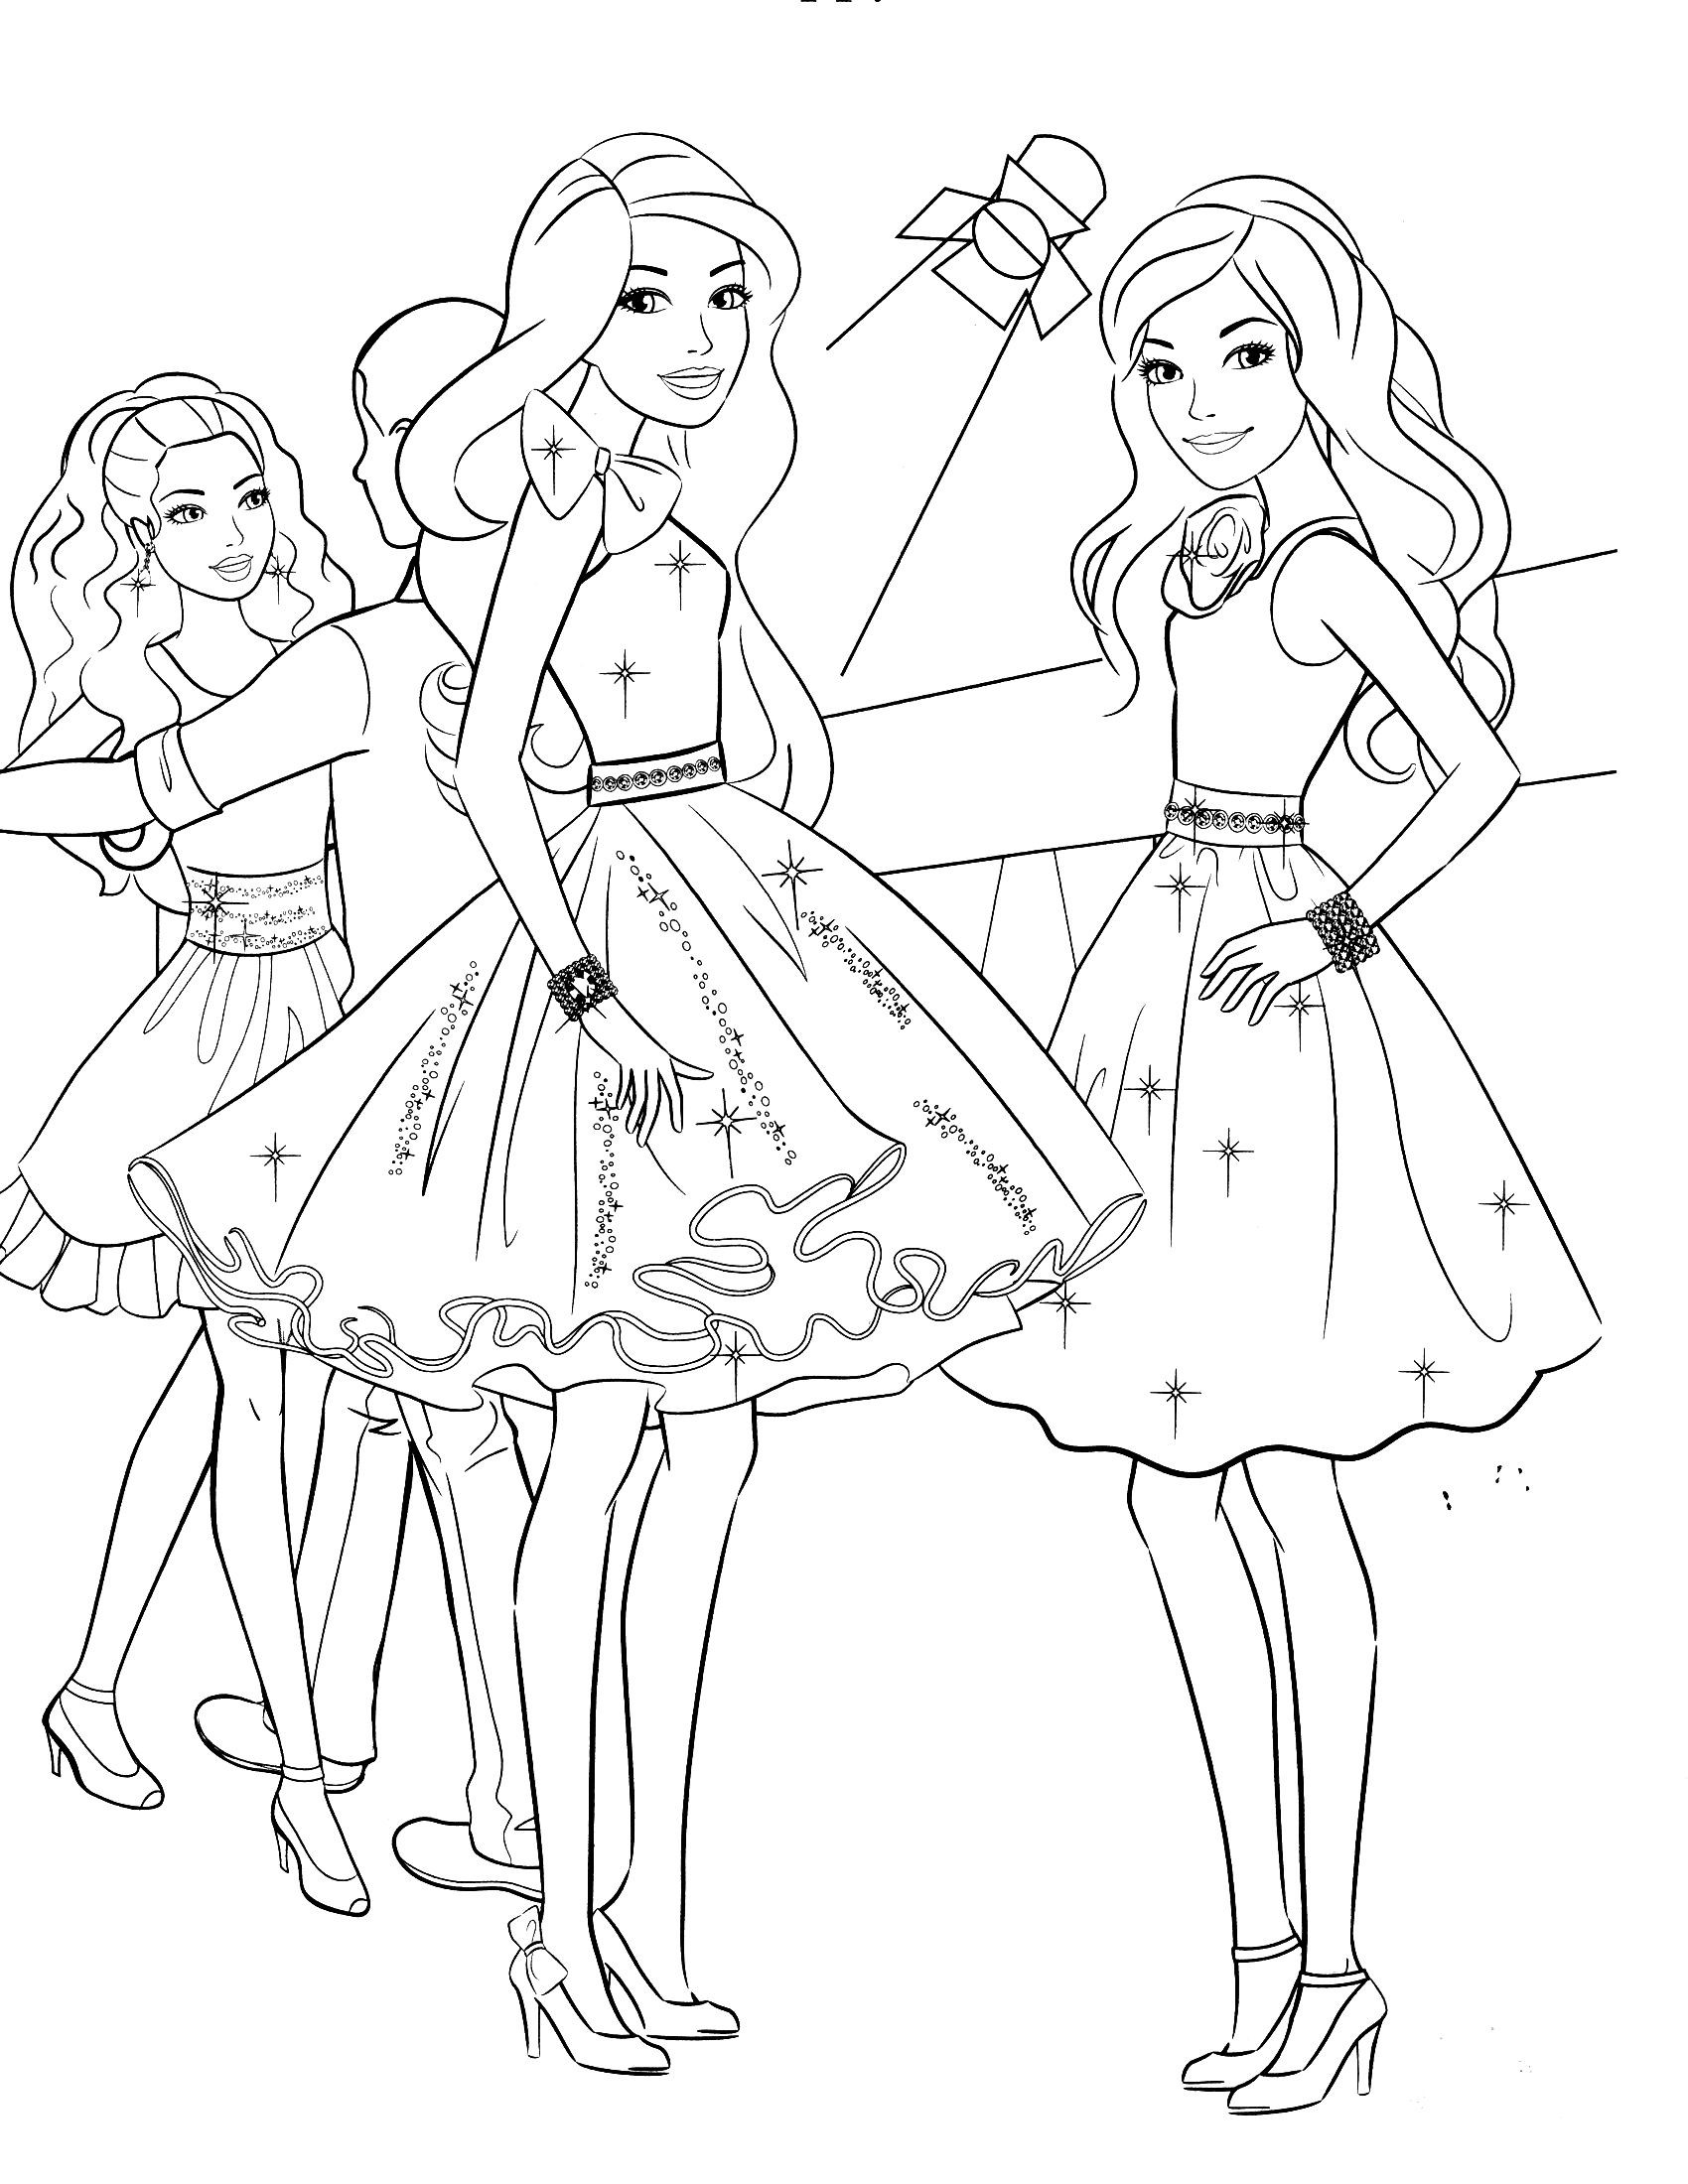 Ausmalbilder Kostenlos Barbie Genial Free Coloring Pages for Kids Coloring Time Das Bild